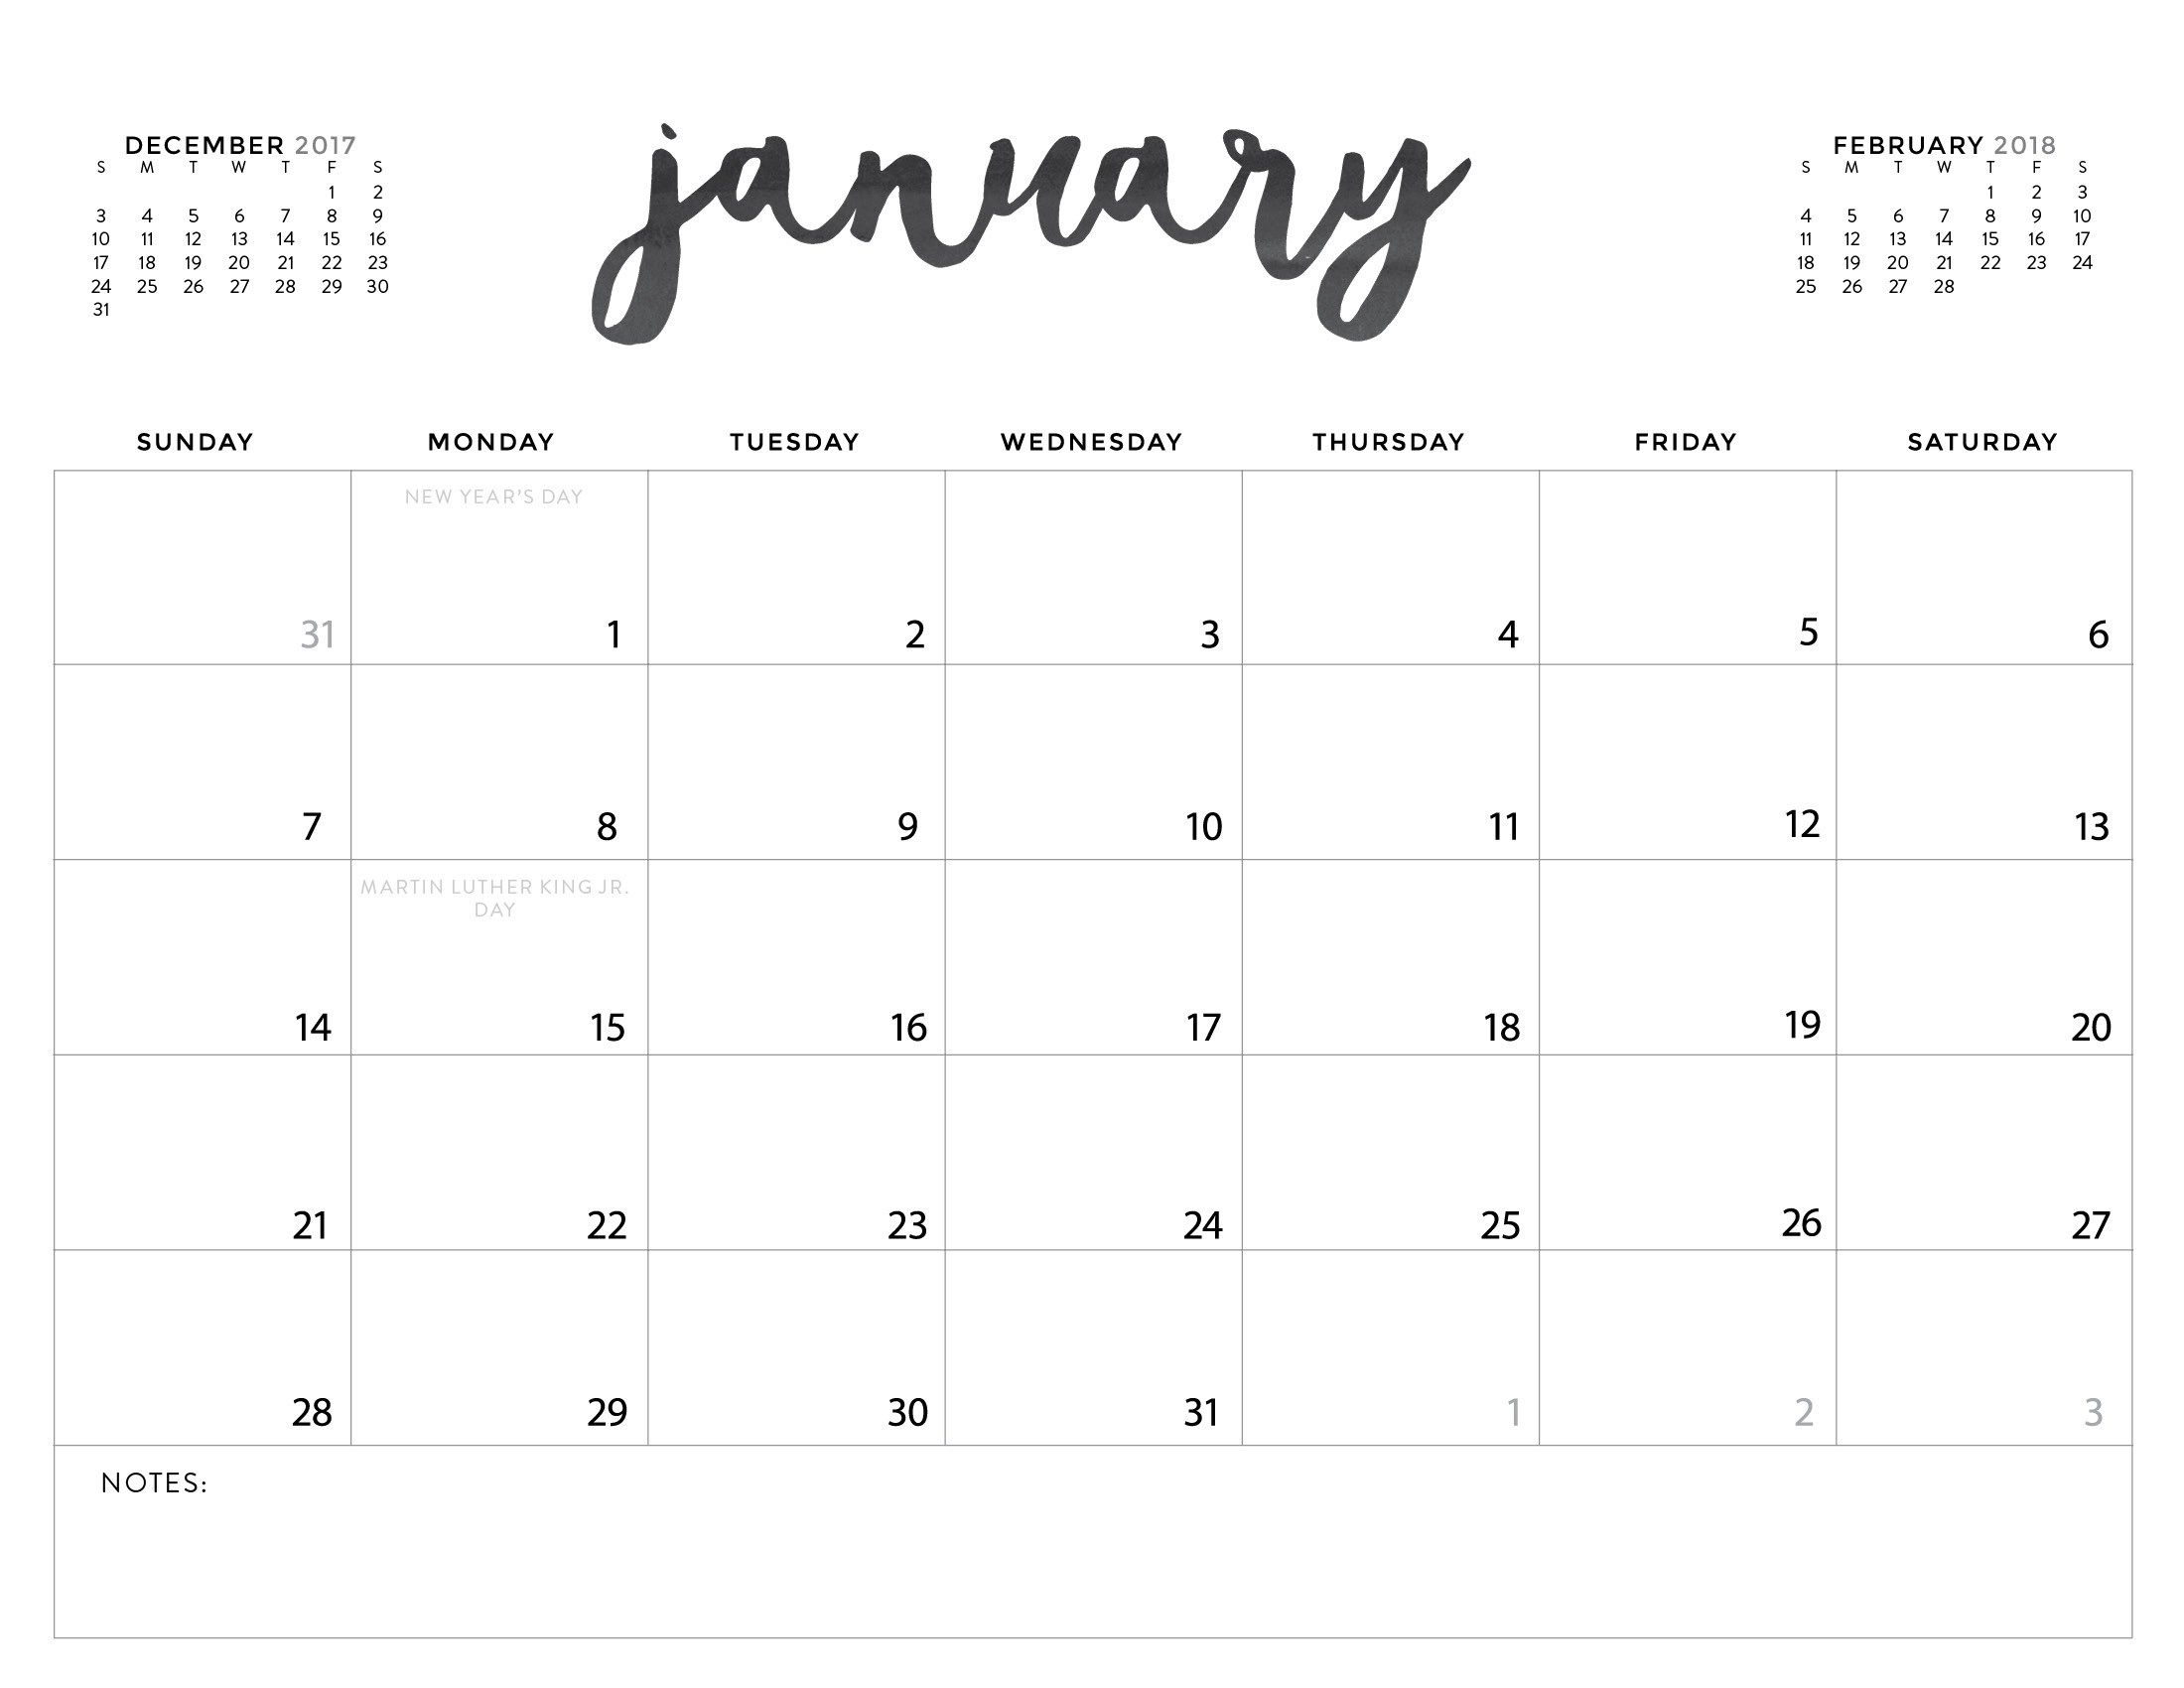 Download Your Free 2018 Printable Calendars Today! There Are